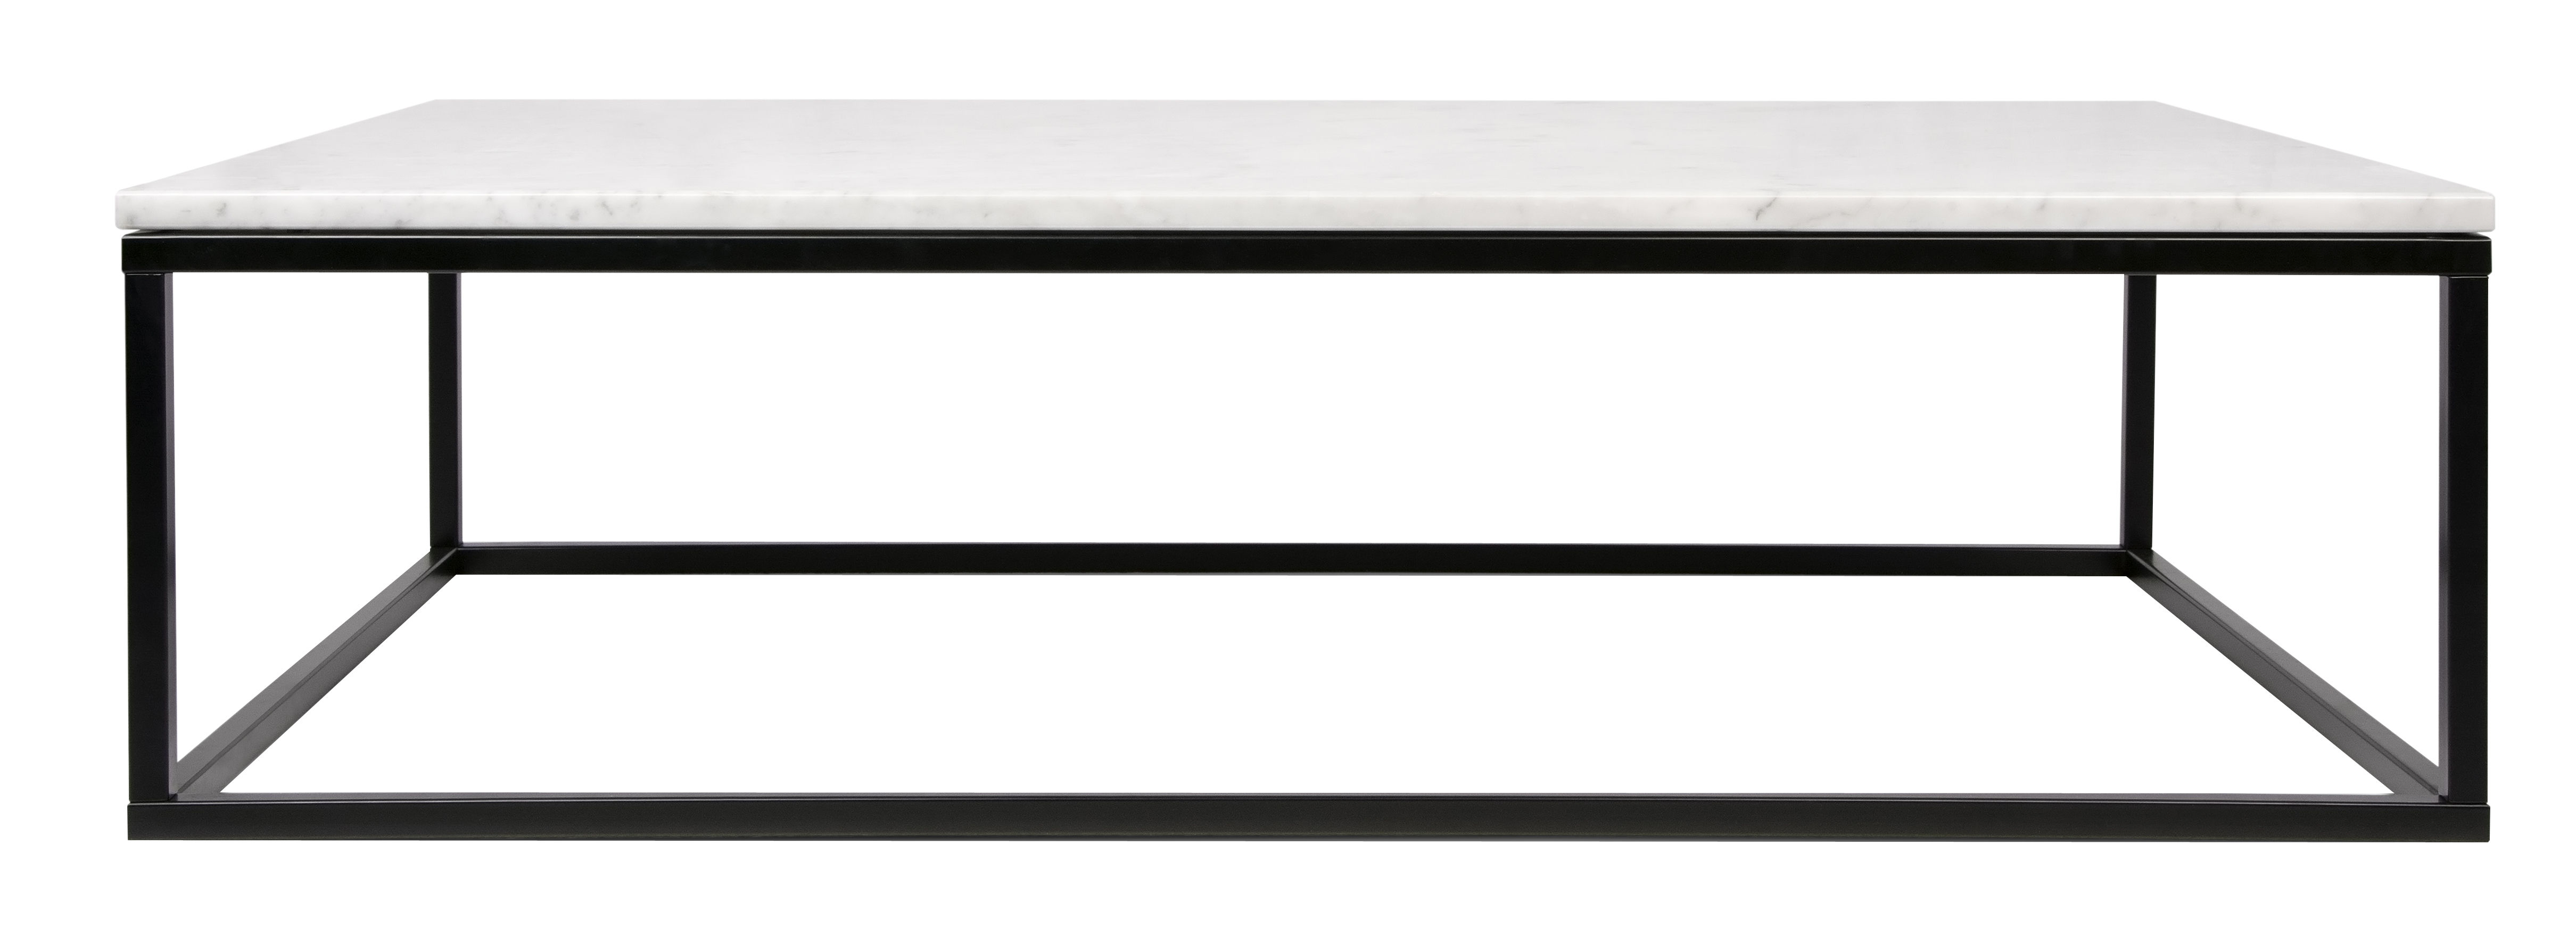 Furniture - Coffee Tables - Prairie Coffee table - / Marble - 120 x 75 cm by POP UP HOME - White marble / Black leg - Lacquered steel, Marble